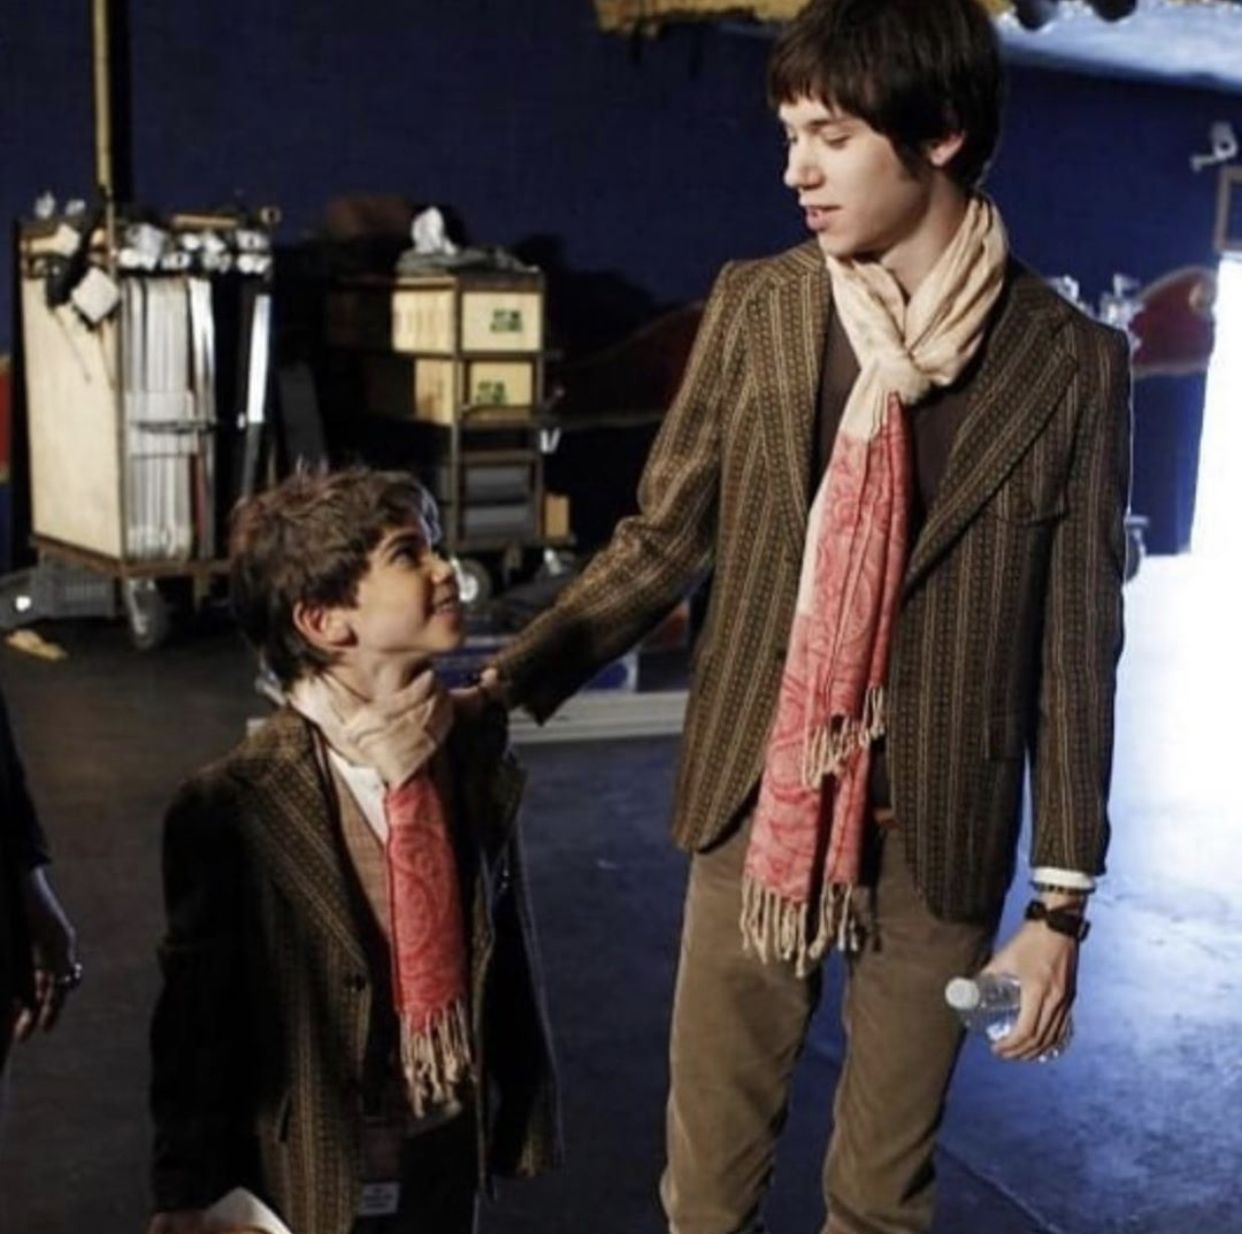 Pin by Julia on Panic! At The Disco Ryan ross, The young